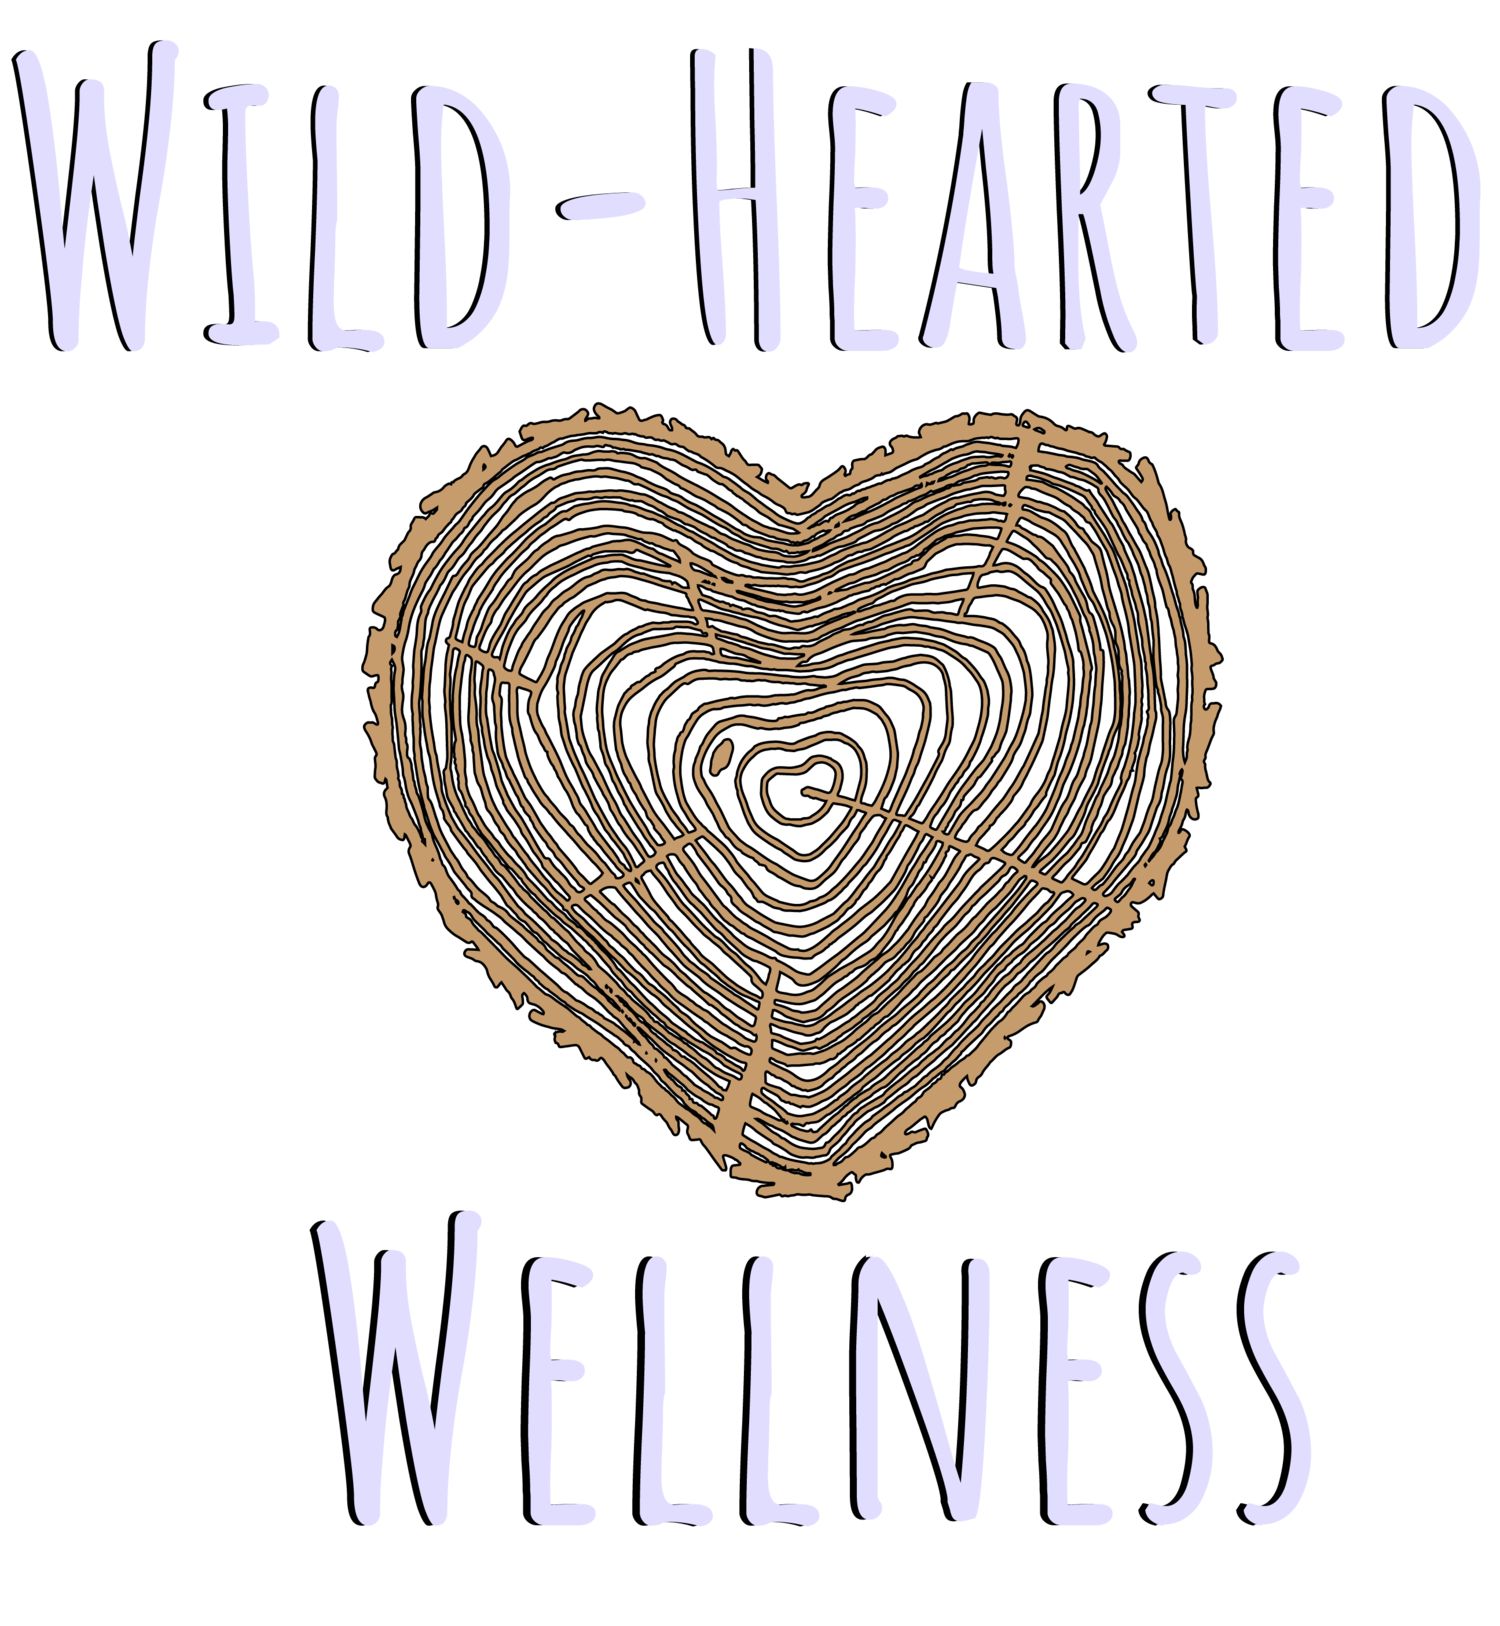 Wild-Hearted Wellness